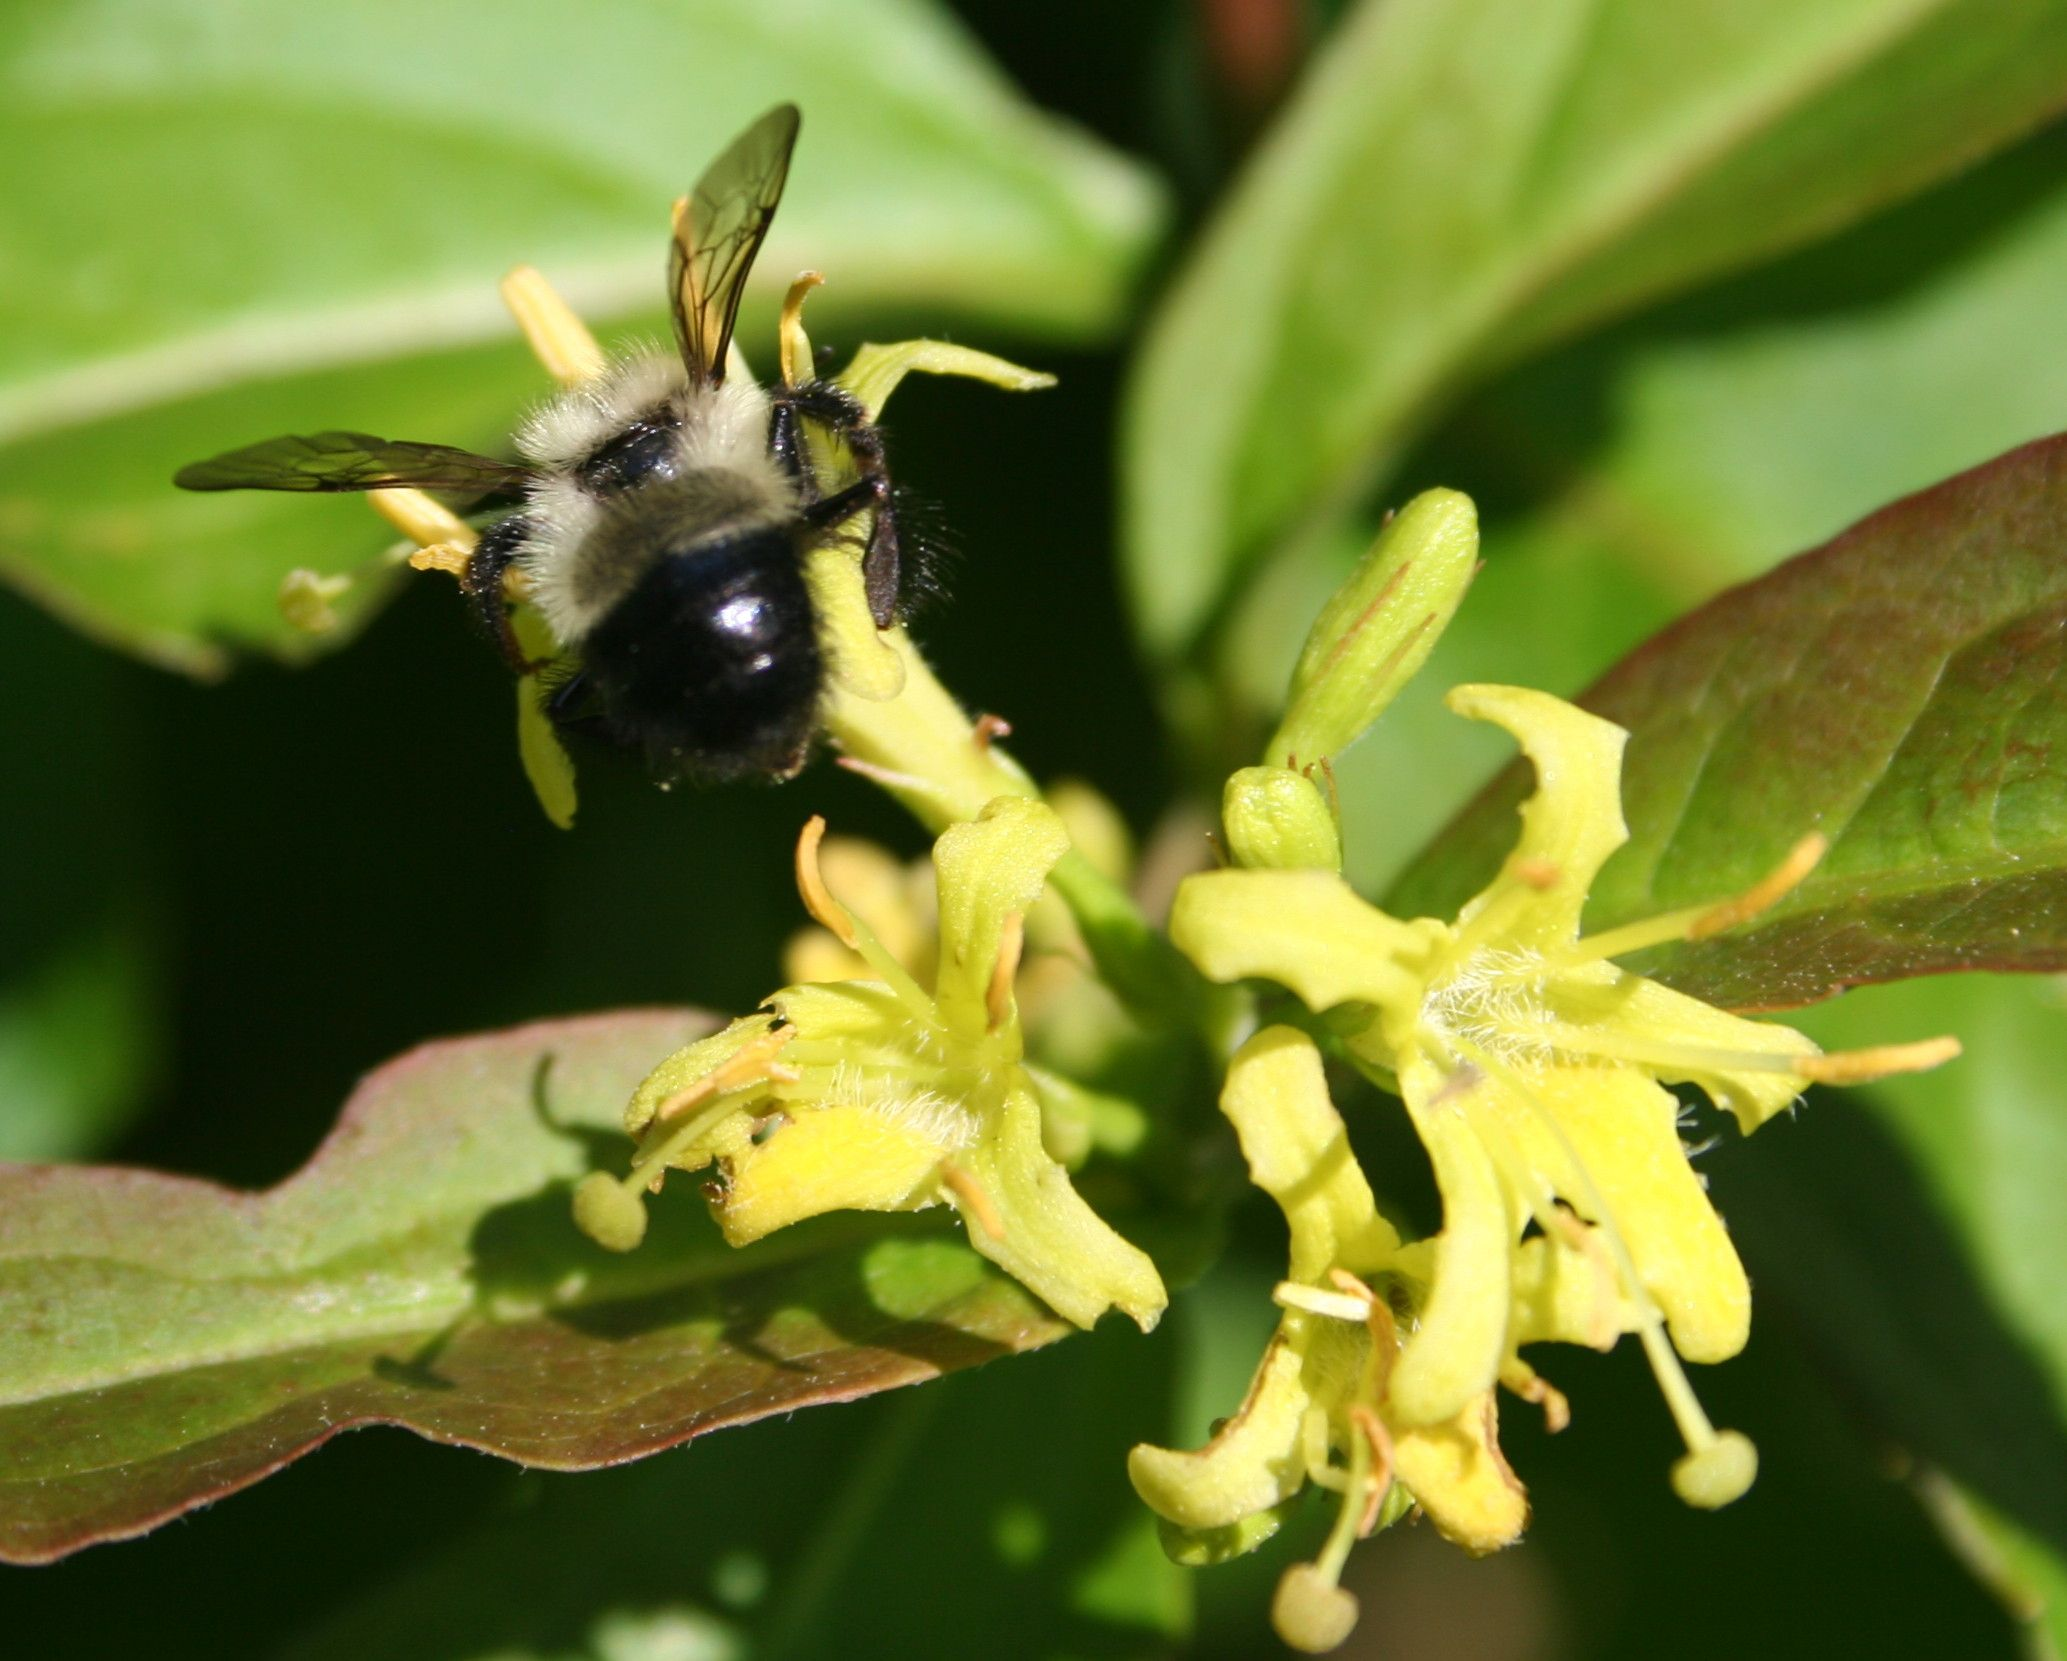 The tubular yellow flowers of diervilla are a source of nectar and pollen for bumble bees and other native pollinators.